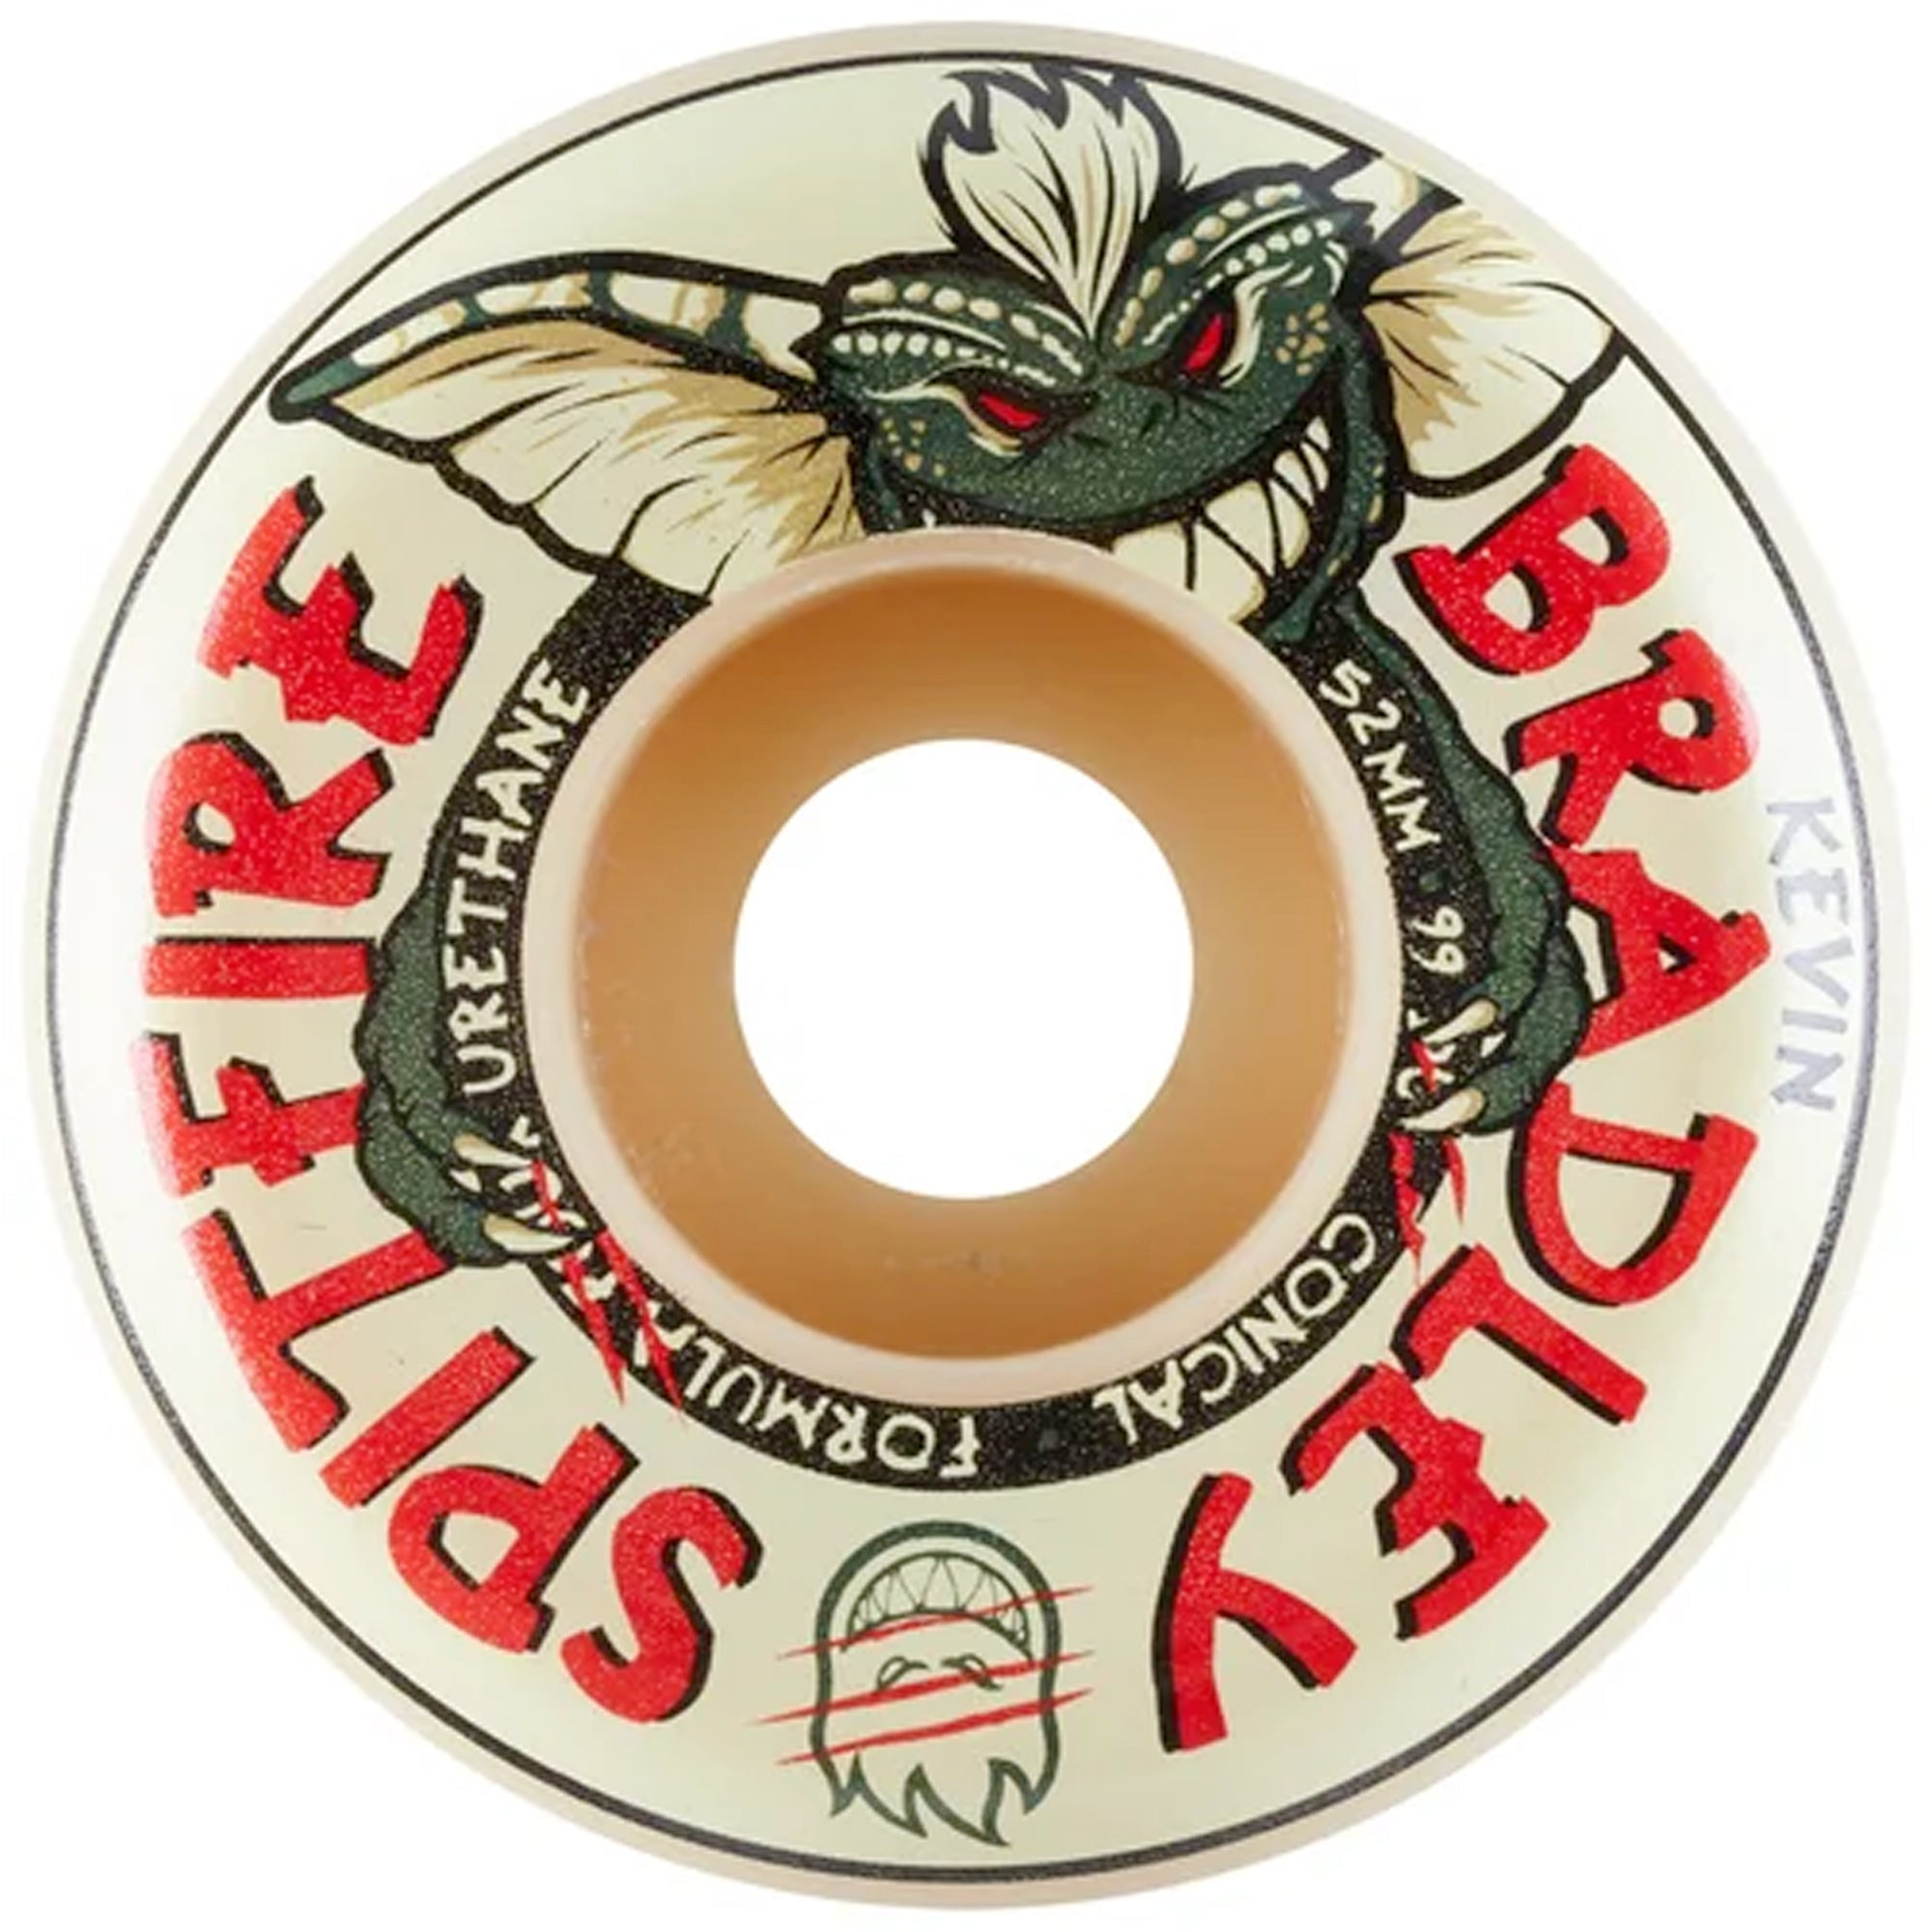 Spitfire Kevin Bradley F4 99a After Midnight 52mm Skateboard Wheel